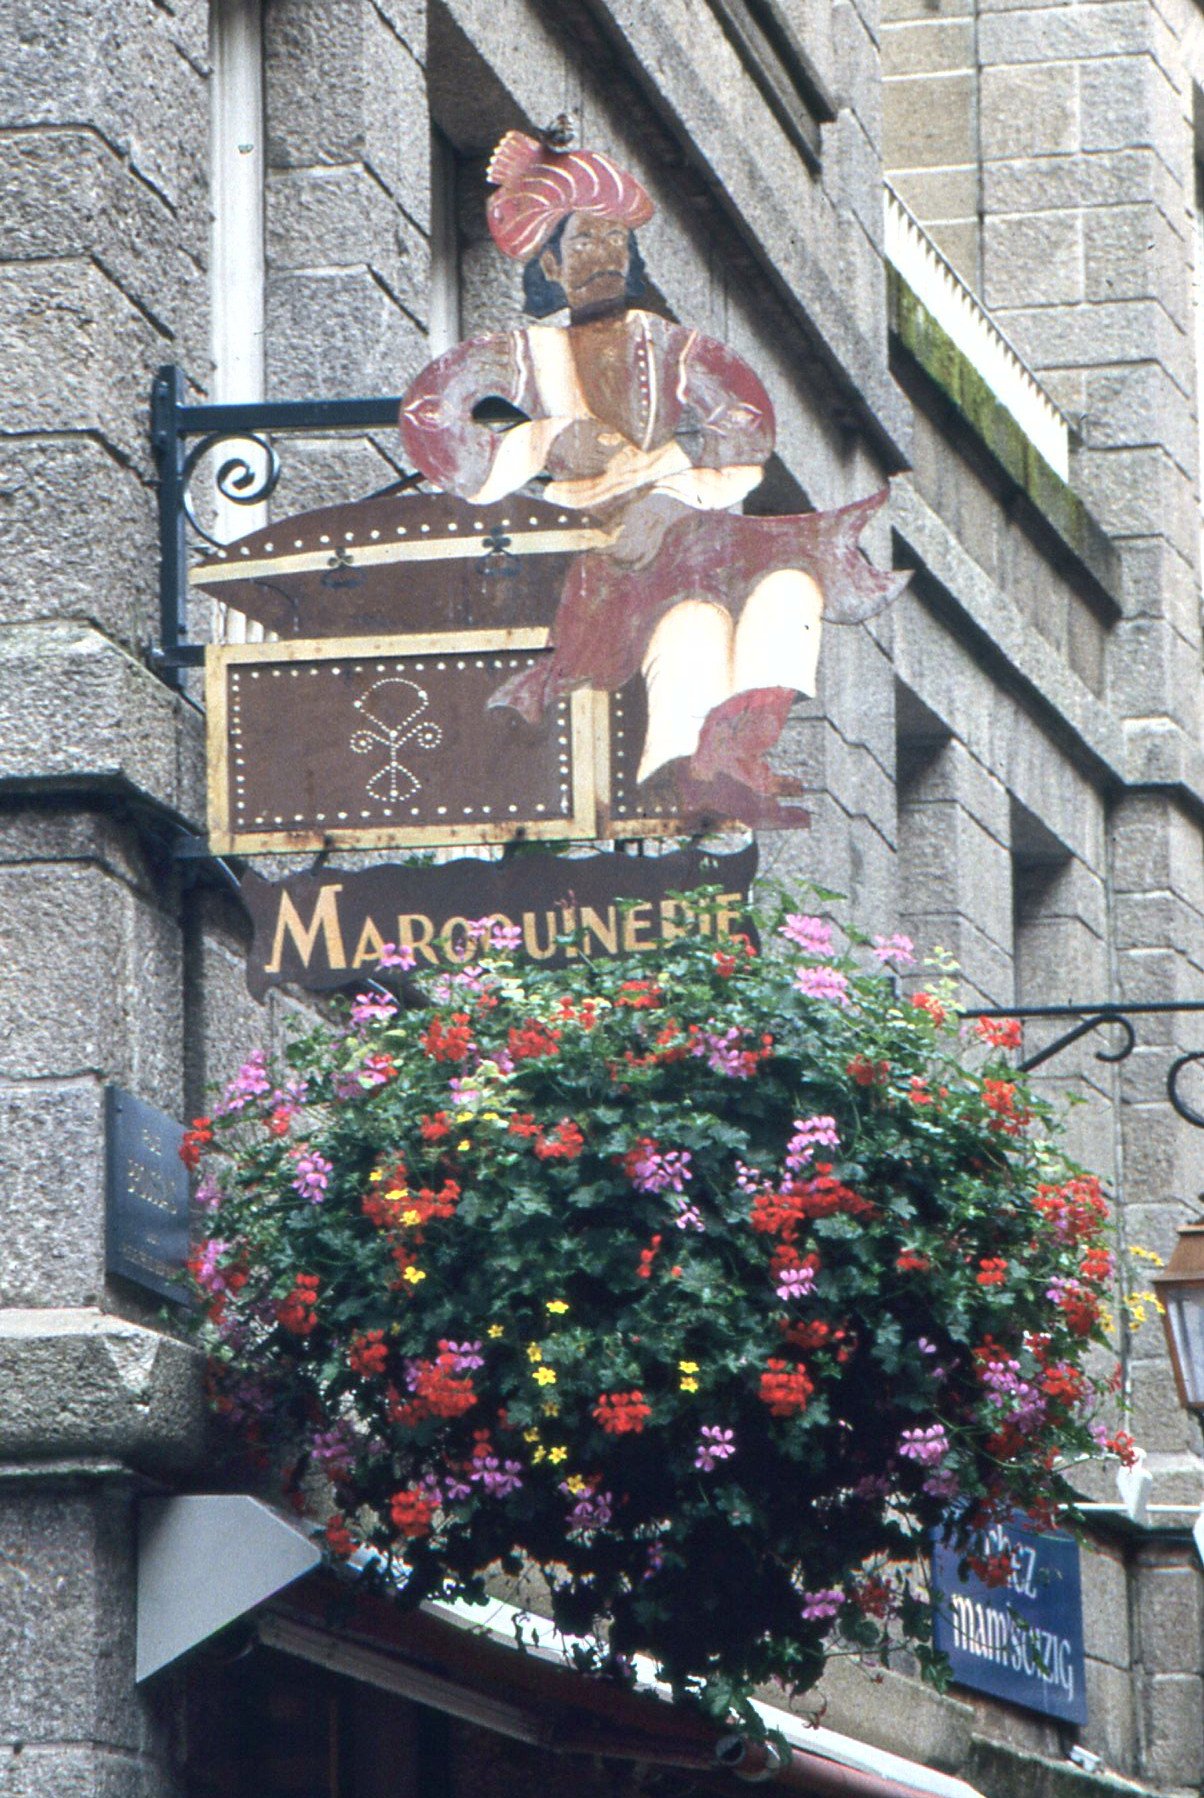 St. Malo's merchants pride themselves on elaborate shop signs, often embellished with floral arrangements.